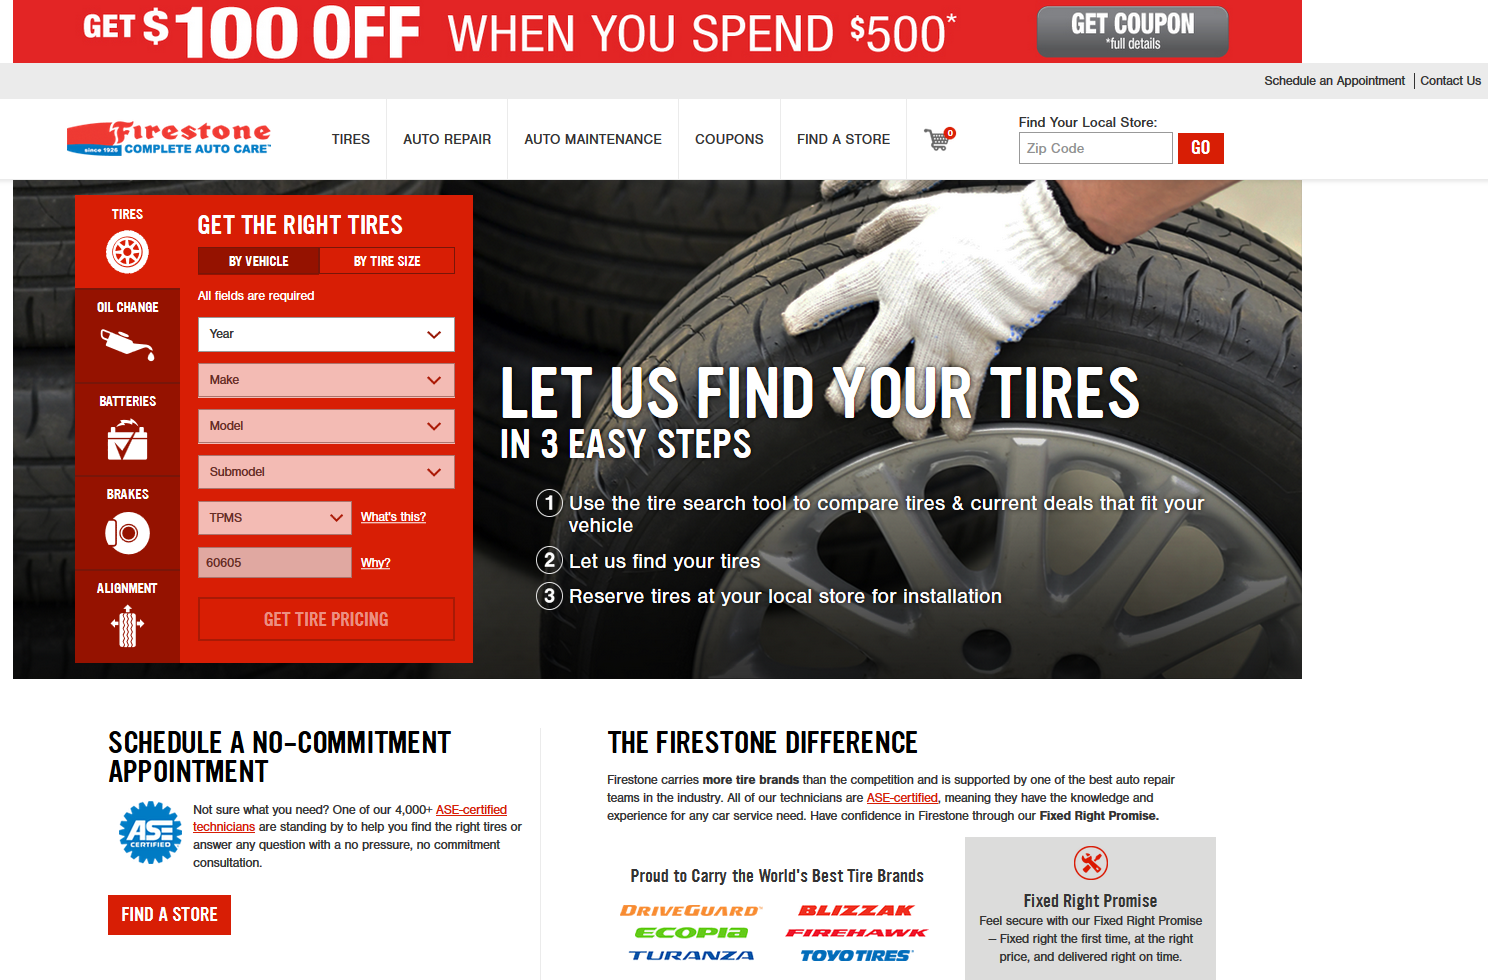 Firestone AdWords landing page